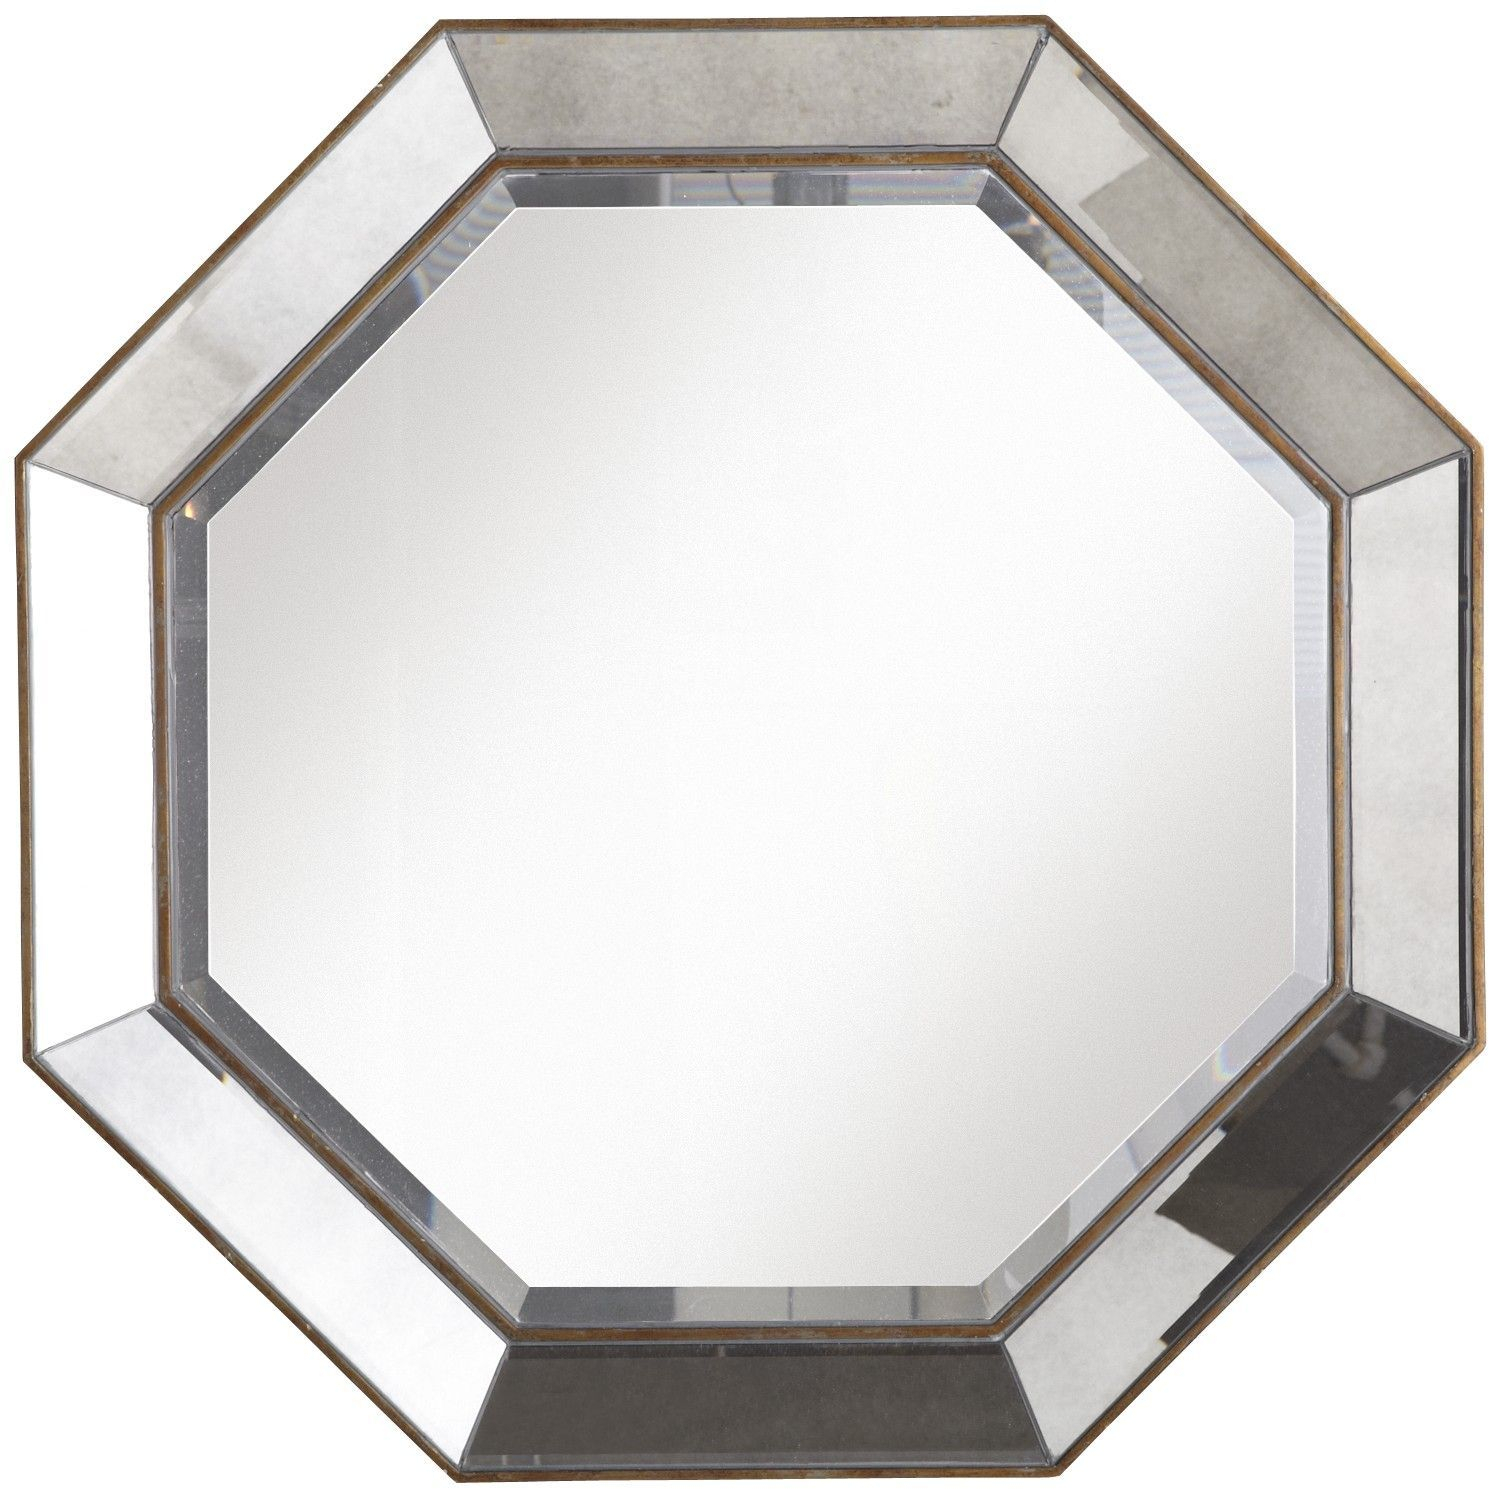 Octagon Mirror Could Be Used As A Coffee Table (Or Two Intended For Trigg Accent Mirrors (View 12 of 20)